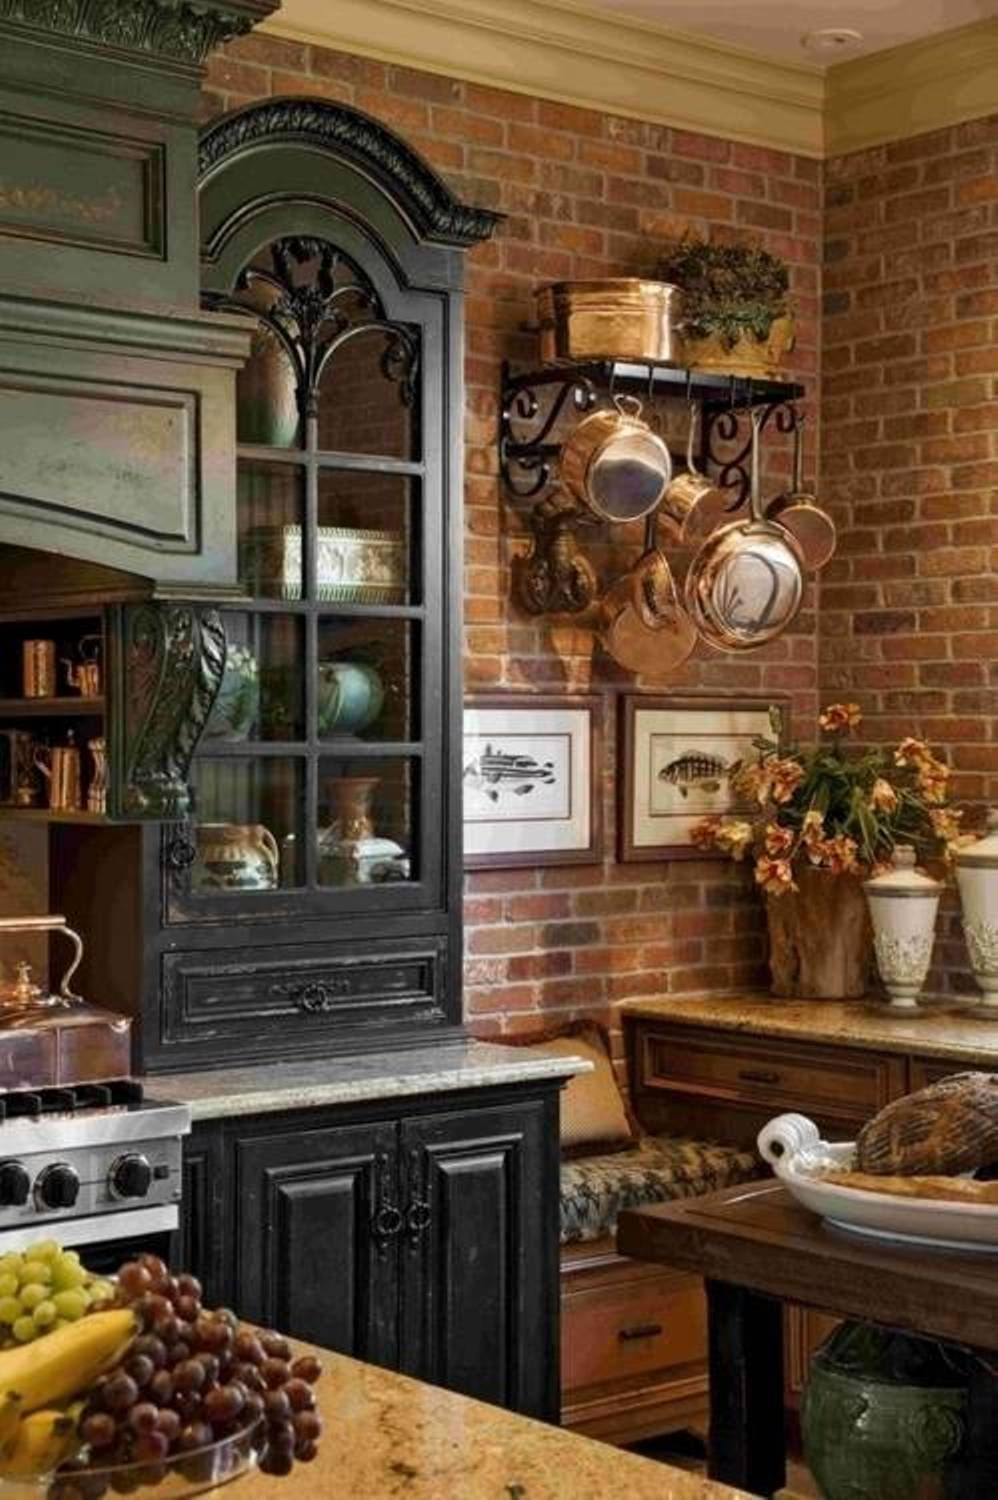 Distressed Black Kitchen Cabinets In Rustic Kitchen Style With Images Country Kitchen Decor